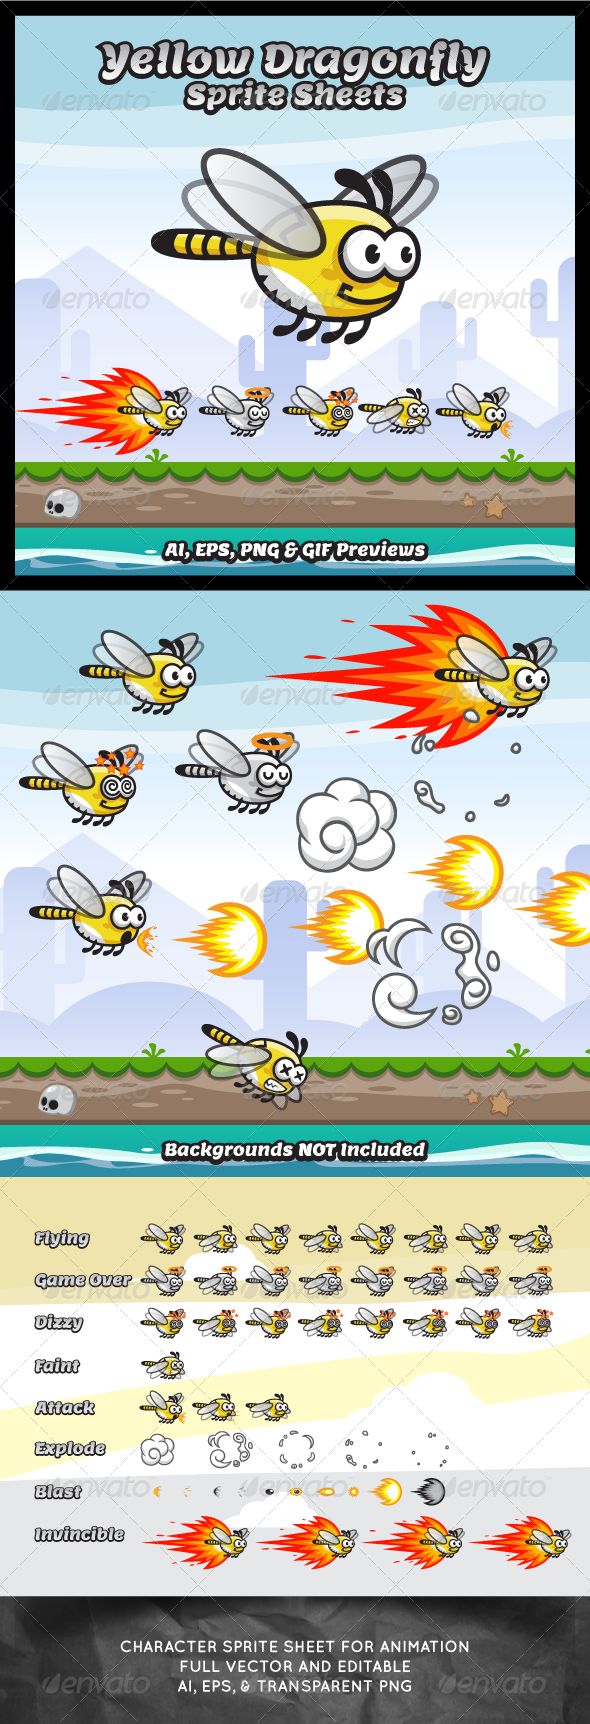 GraphicRiver Yellow Dragonfly Sprite Sheets 8327864